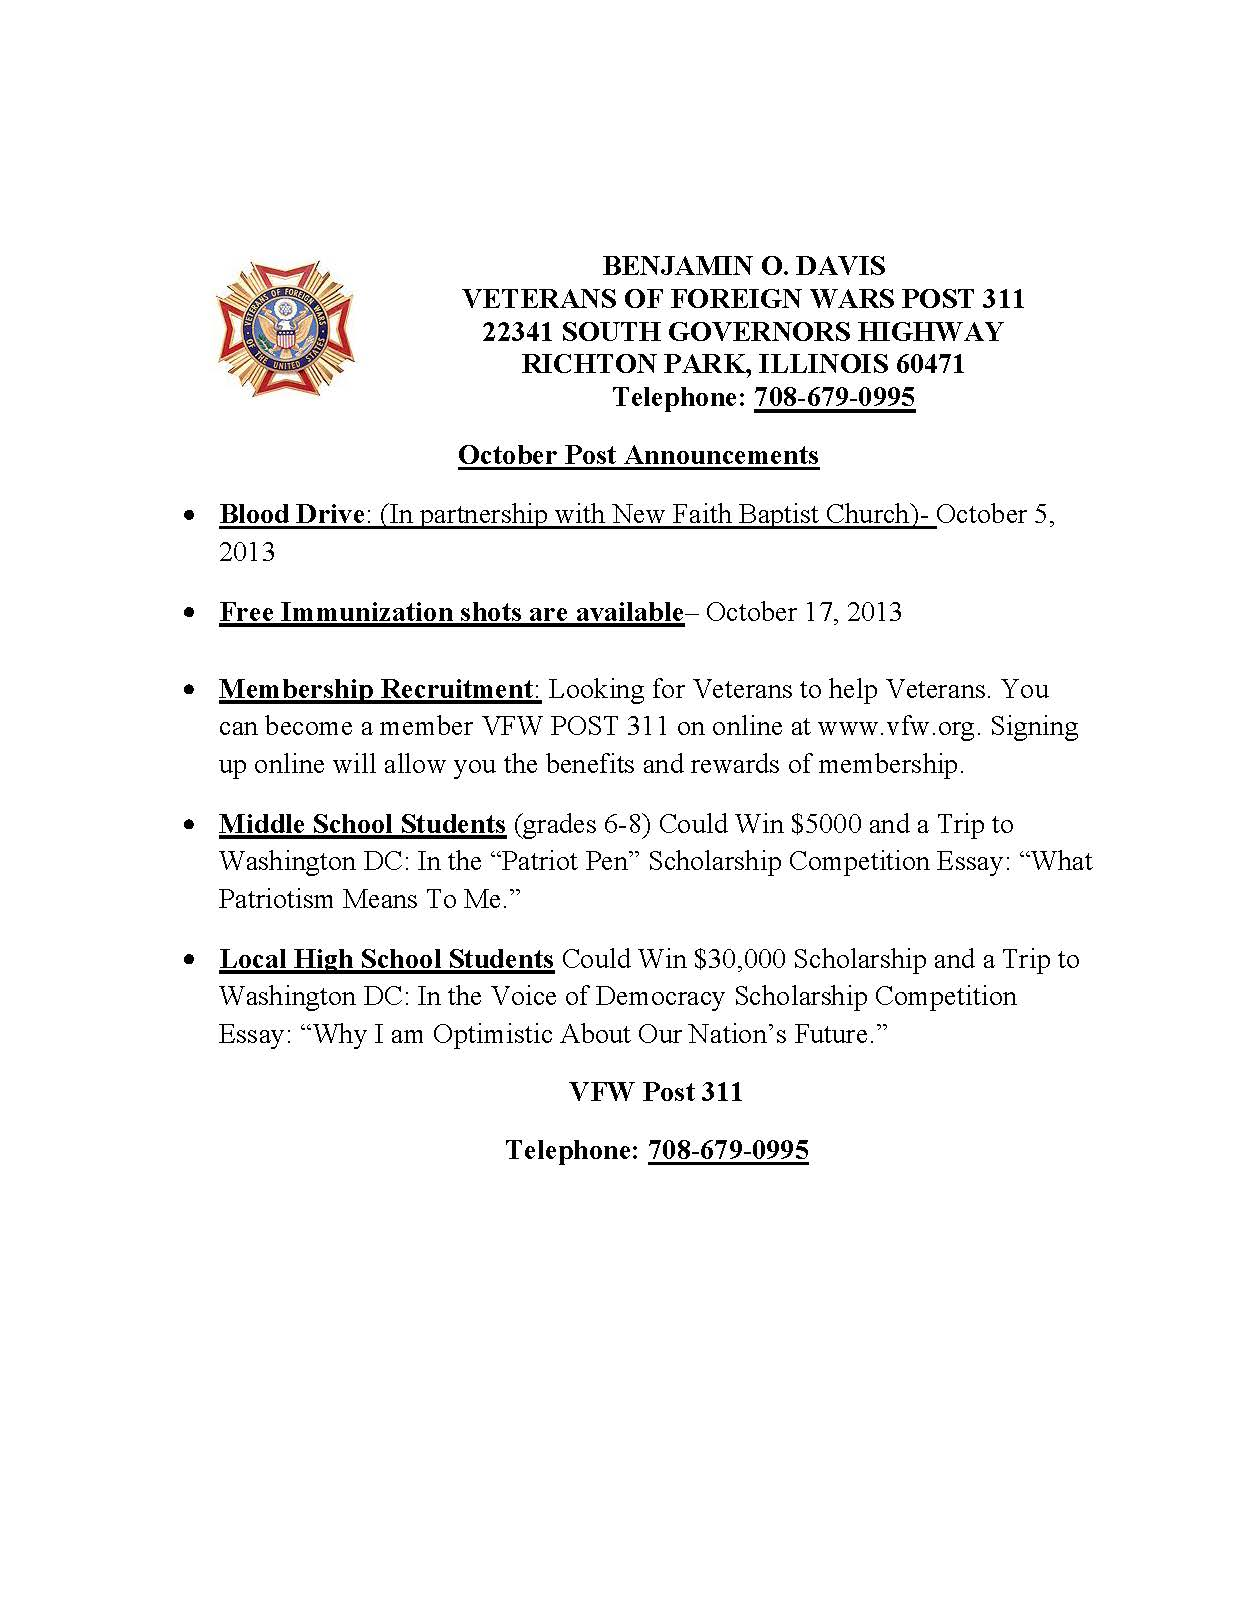 veterans in richton park richton park il official website  2013 events